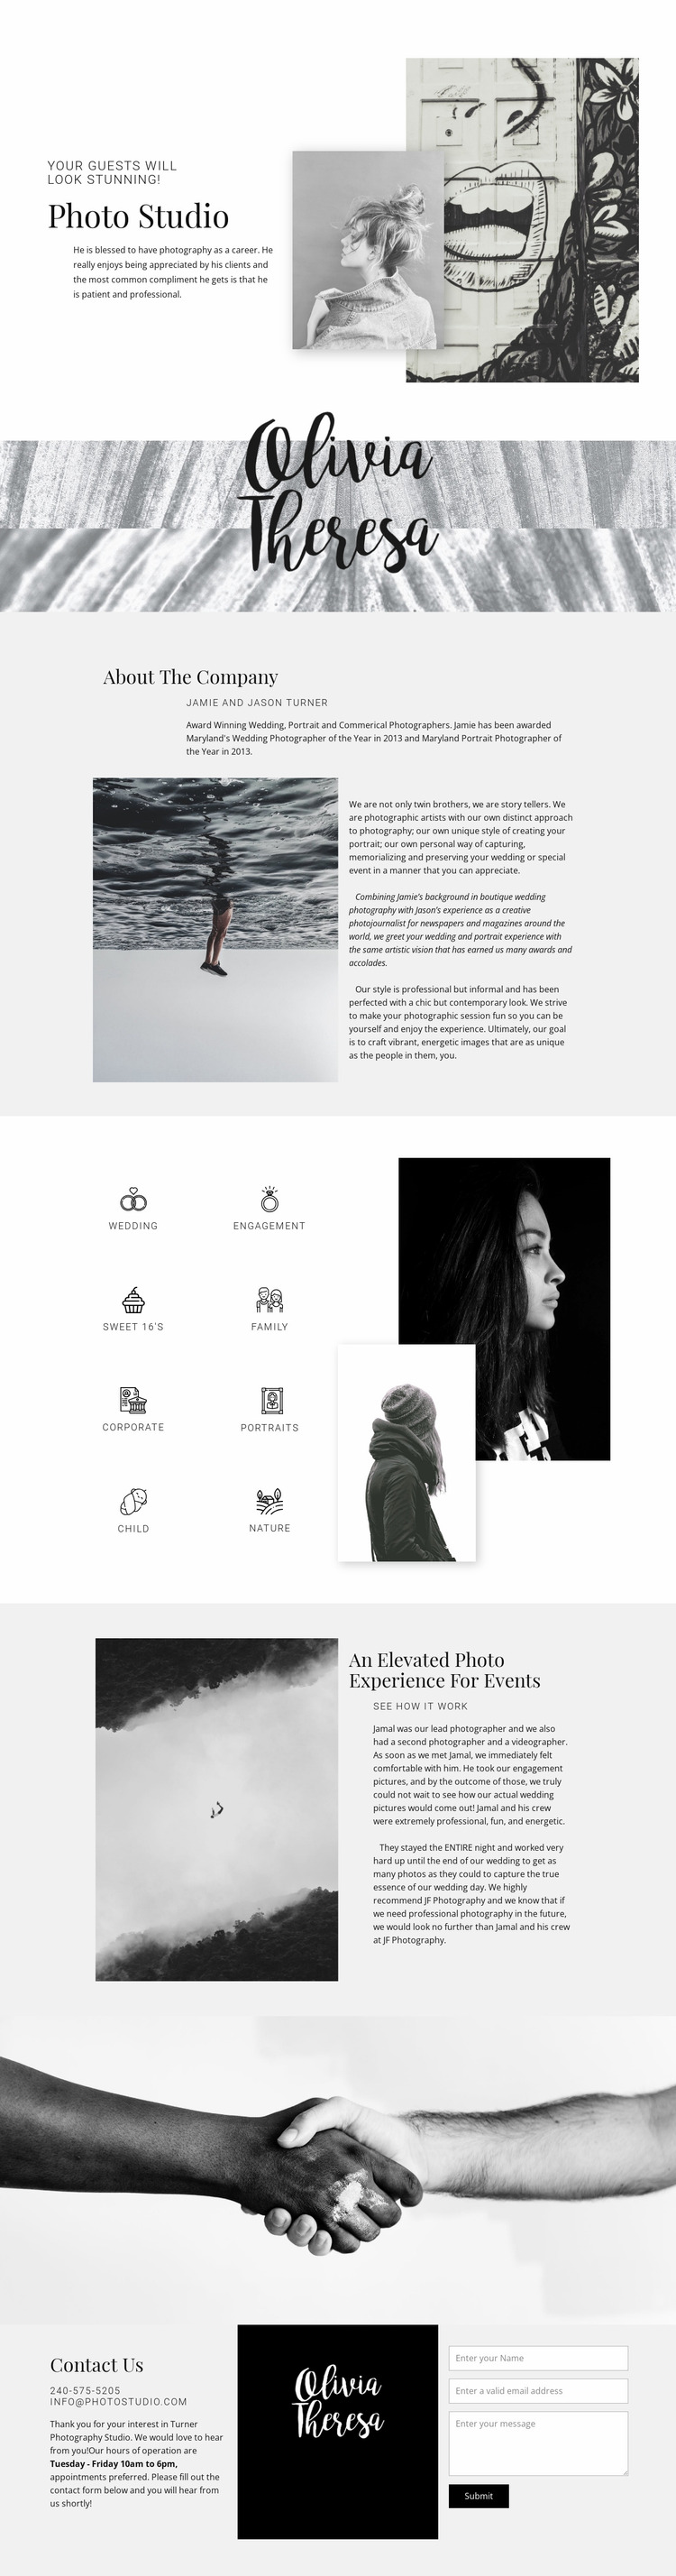 Ideas brought to live art Website Mockup